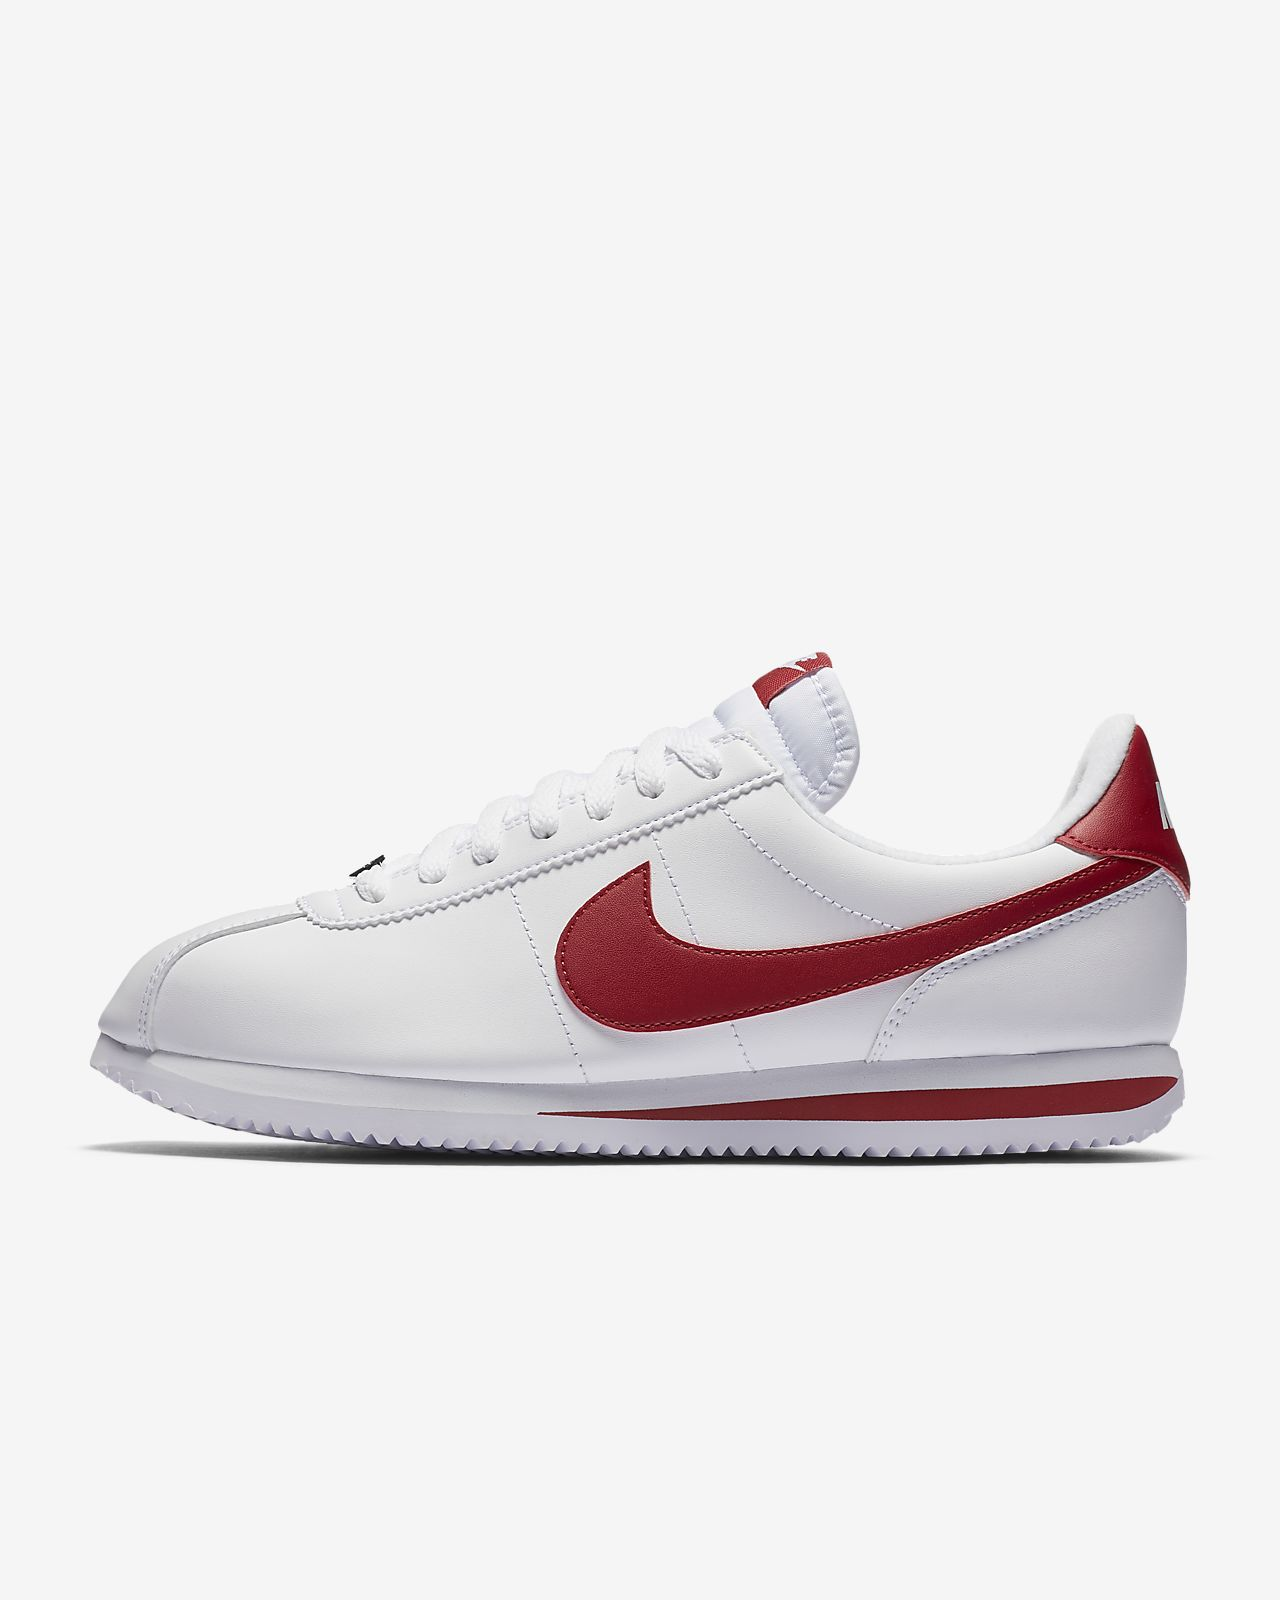 14 Best Nike Cortez Sneakers (January 2020) | RunRepeat